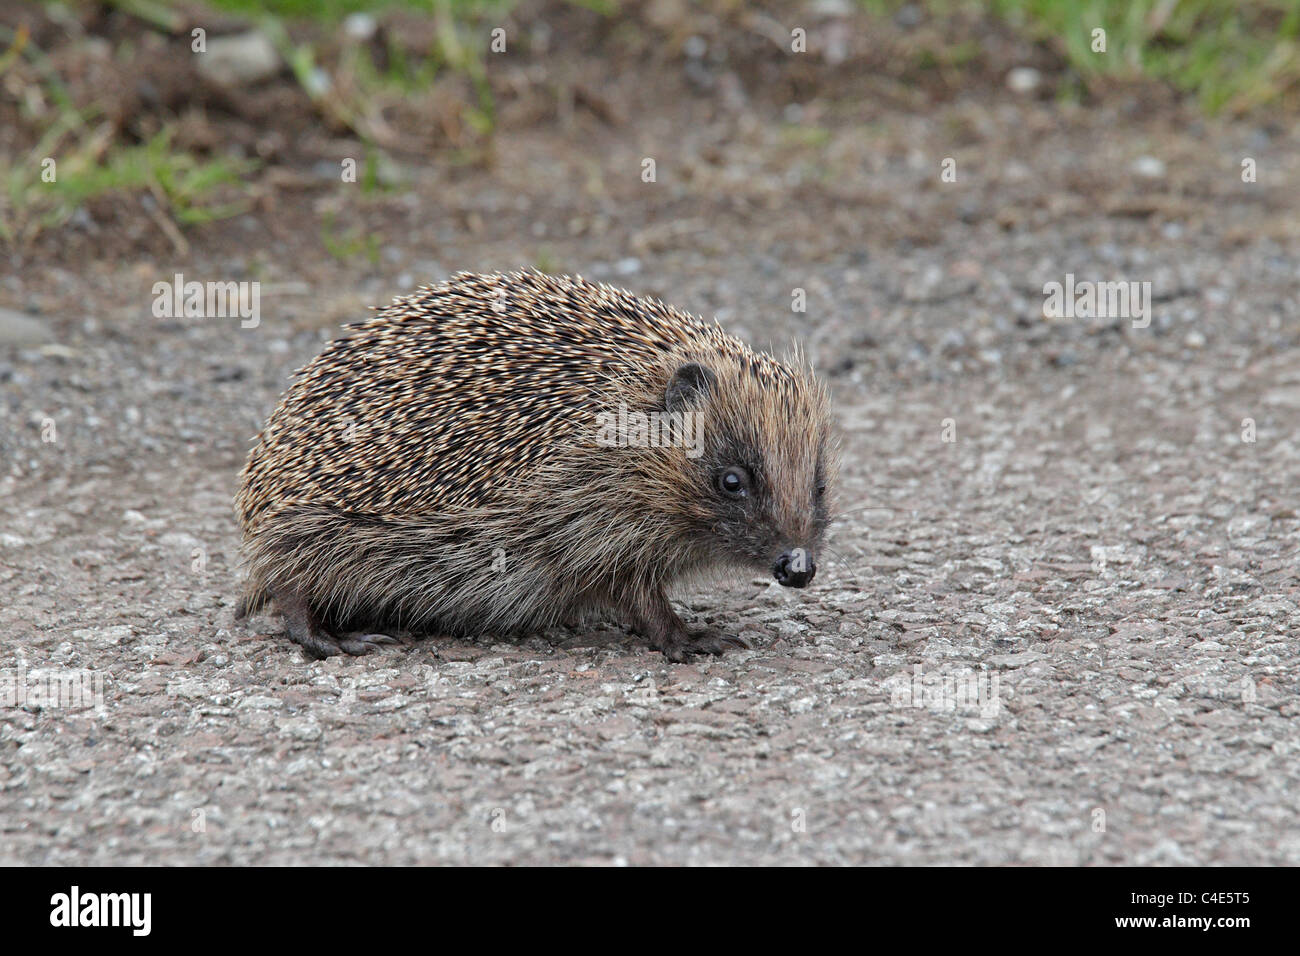 Western Hedgehog on gravel road - Stock Image